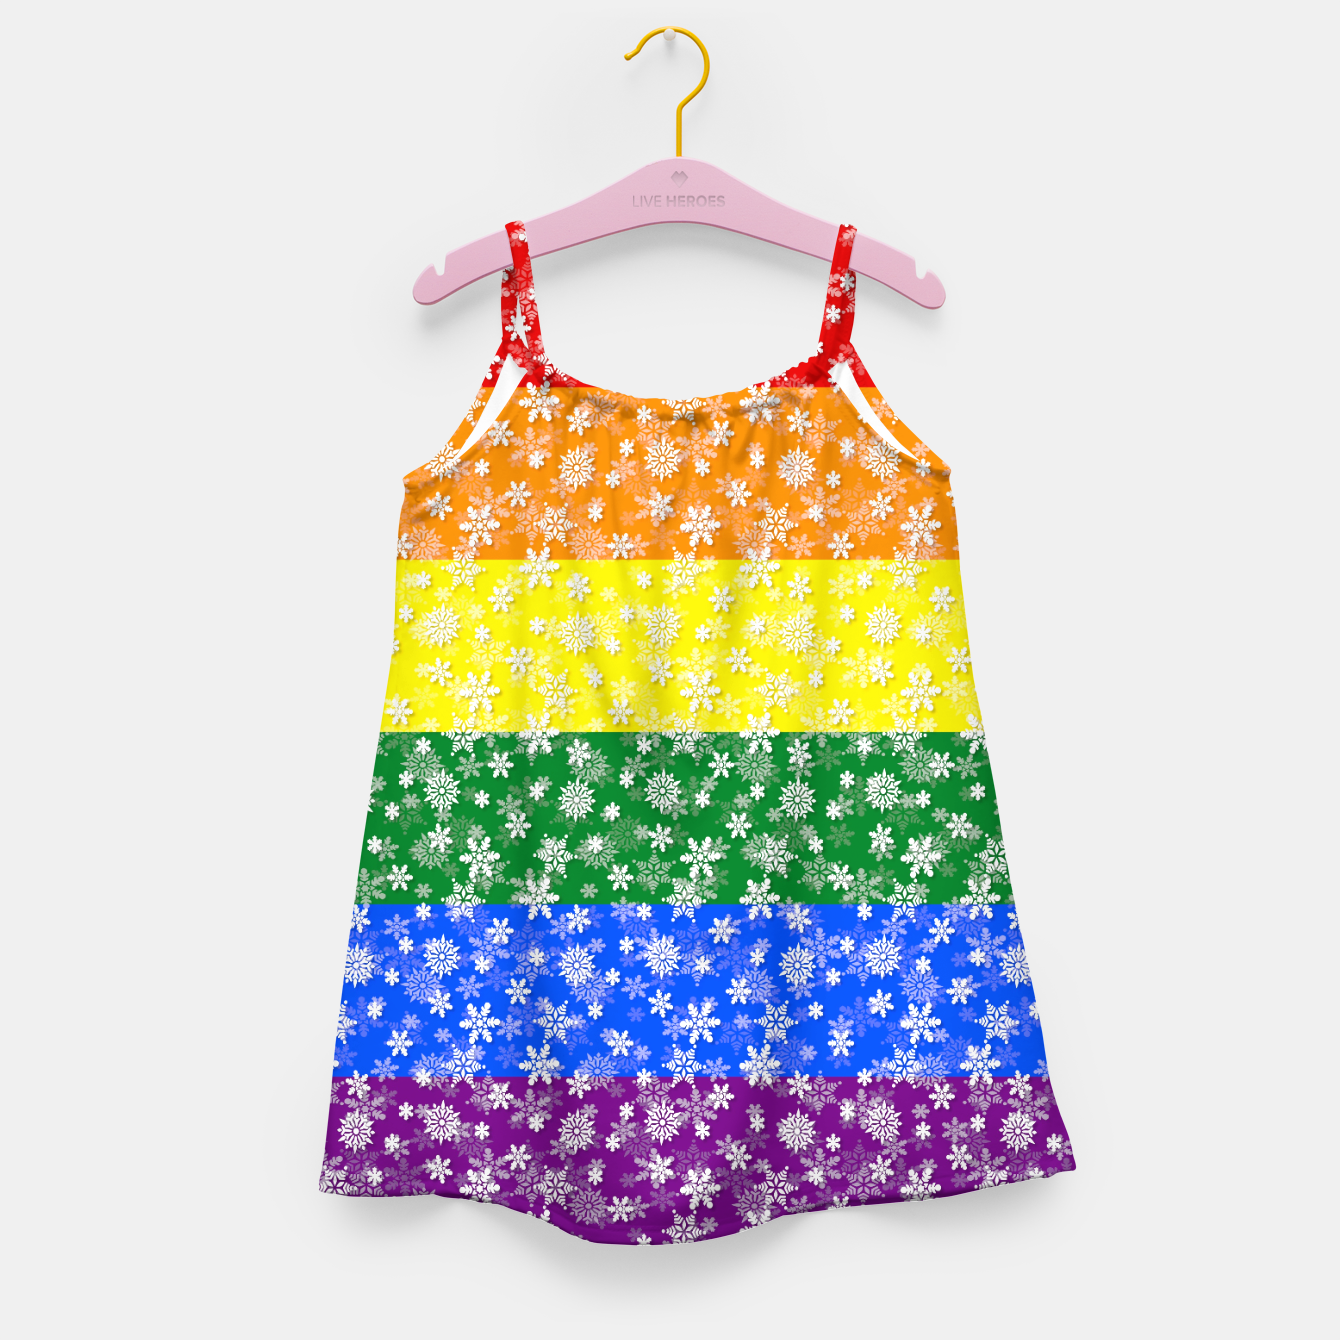 081459ea01 Christmas Pride Bright Festive Rainbow Snowflakes Girl s dress